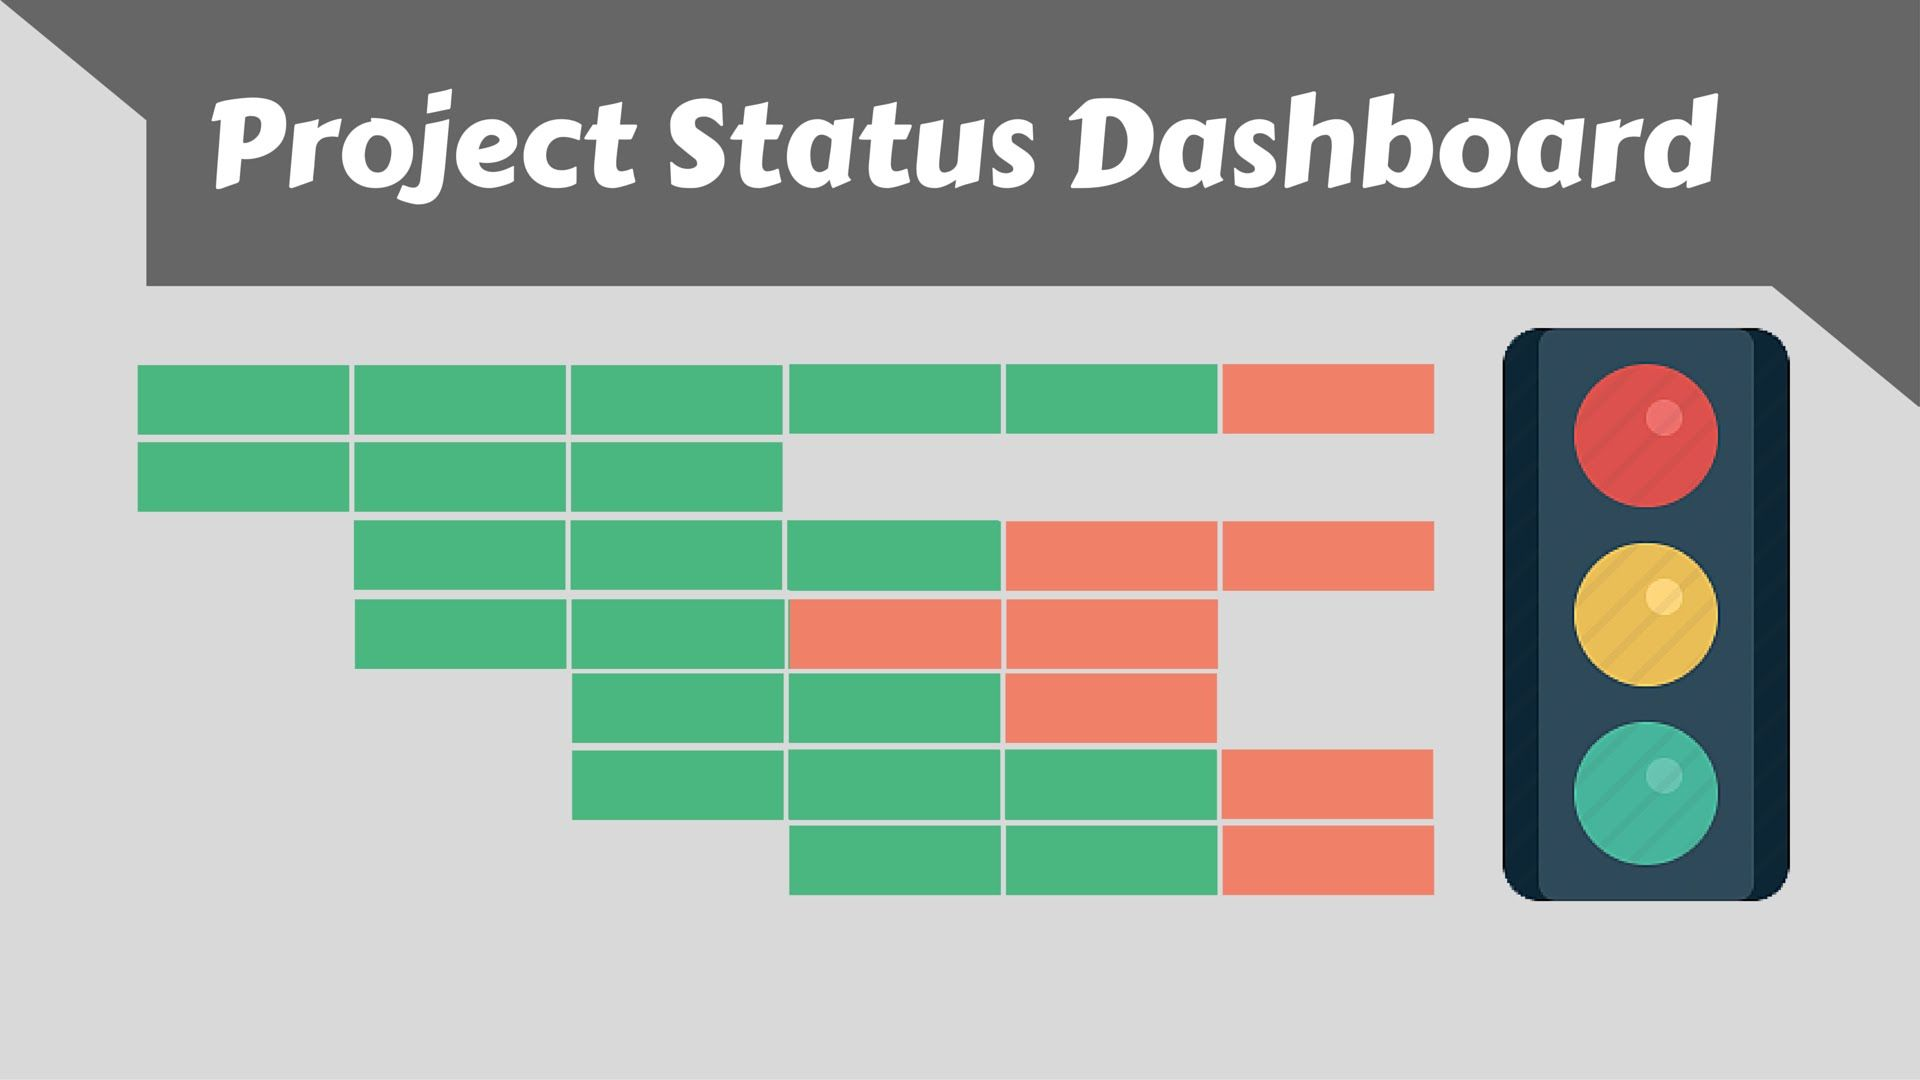 #Project #Status #Dashboard